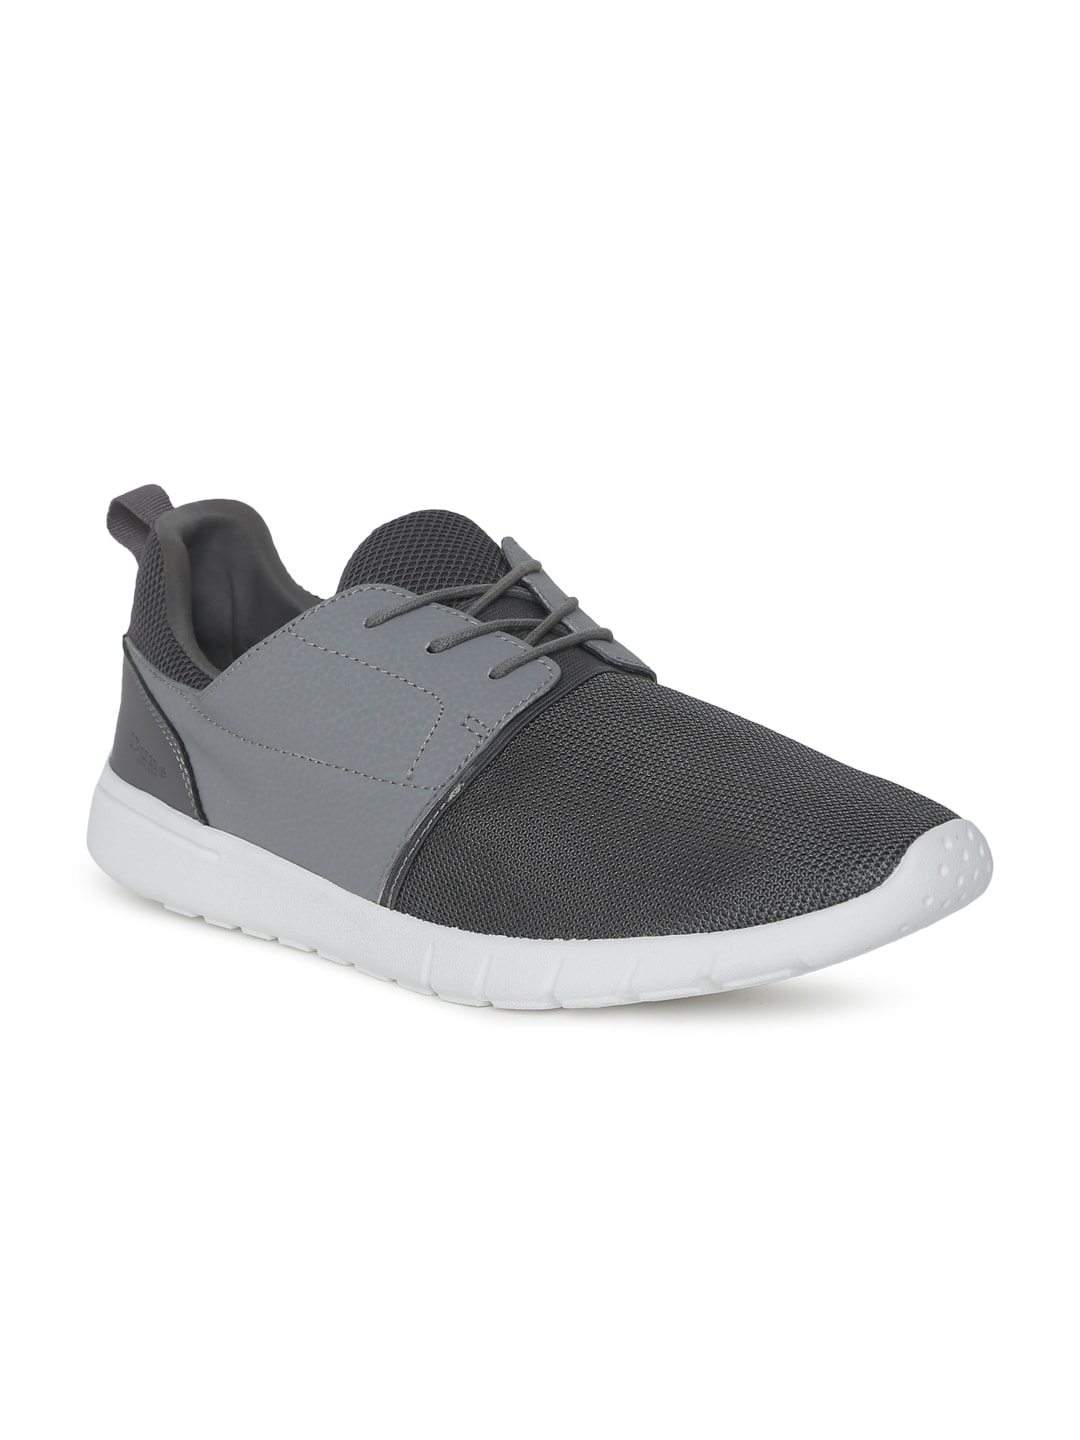 0154fd1a52f0 Men Footwear - Buy Mens Footwear   Shoes Online in India - Myntra